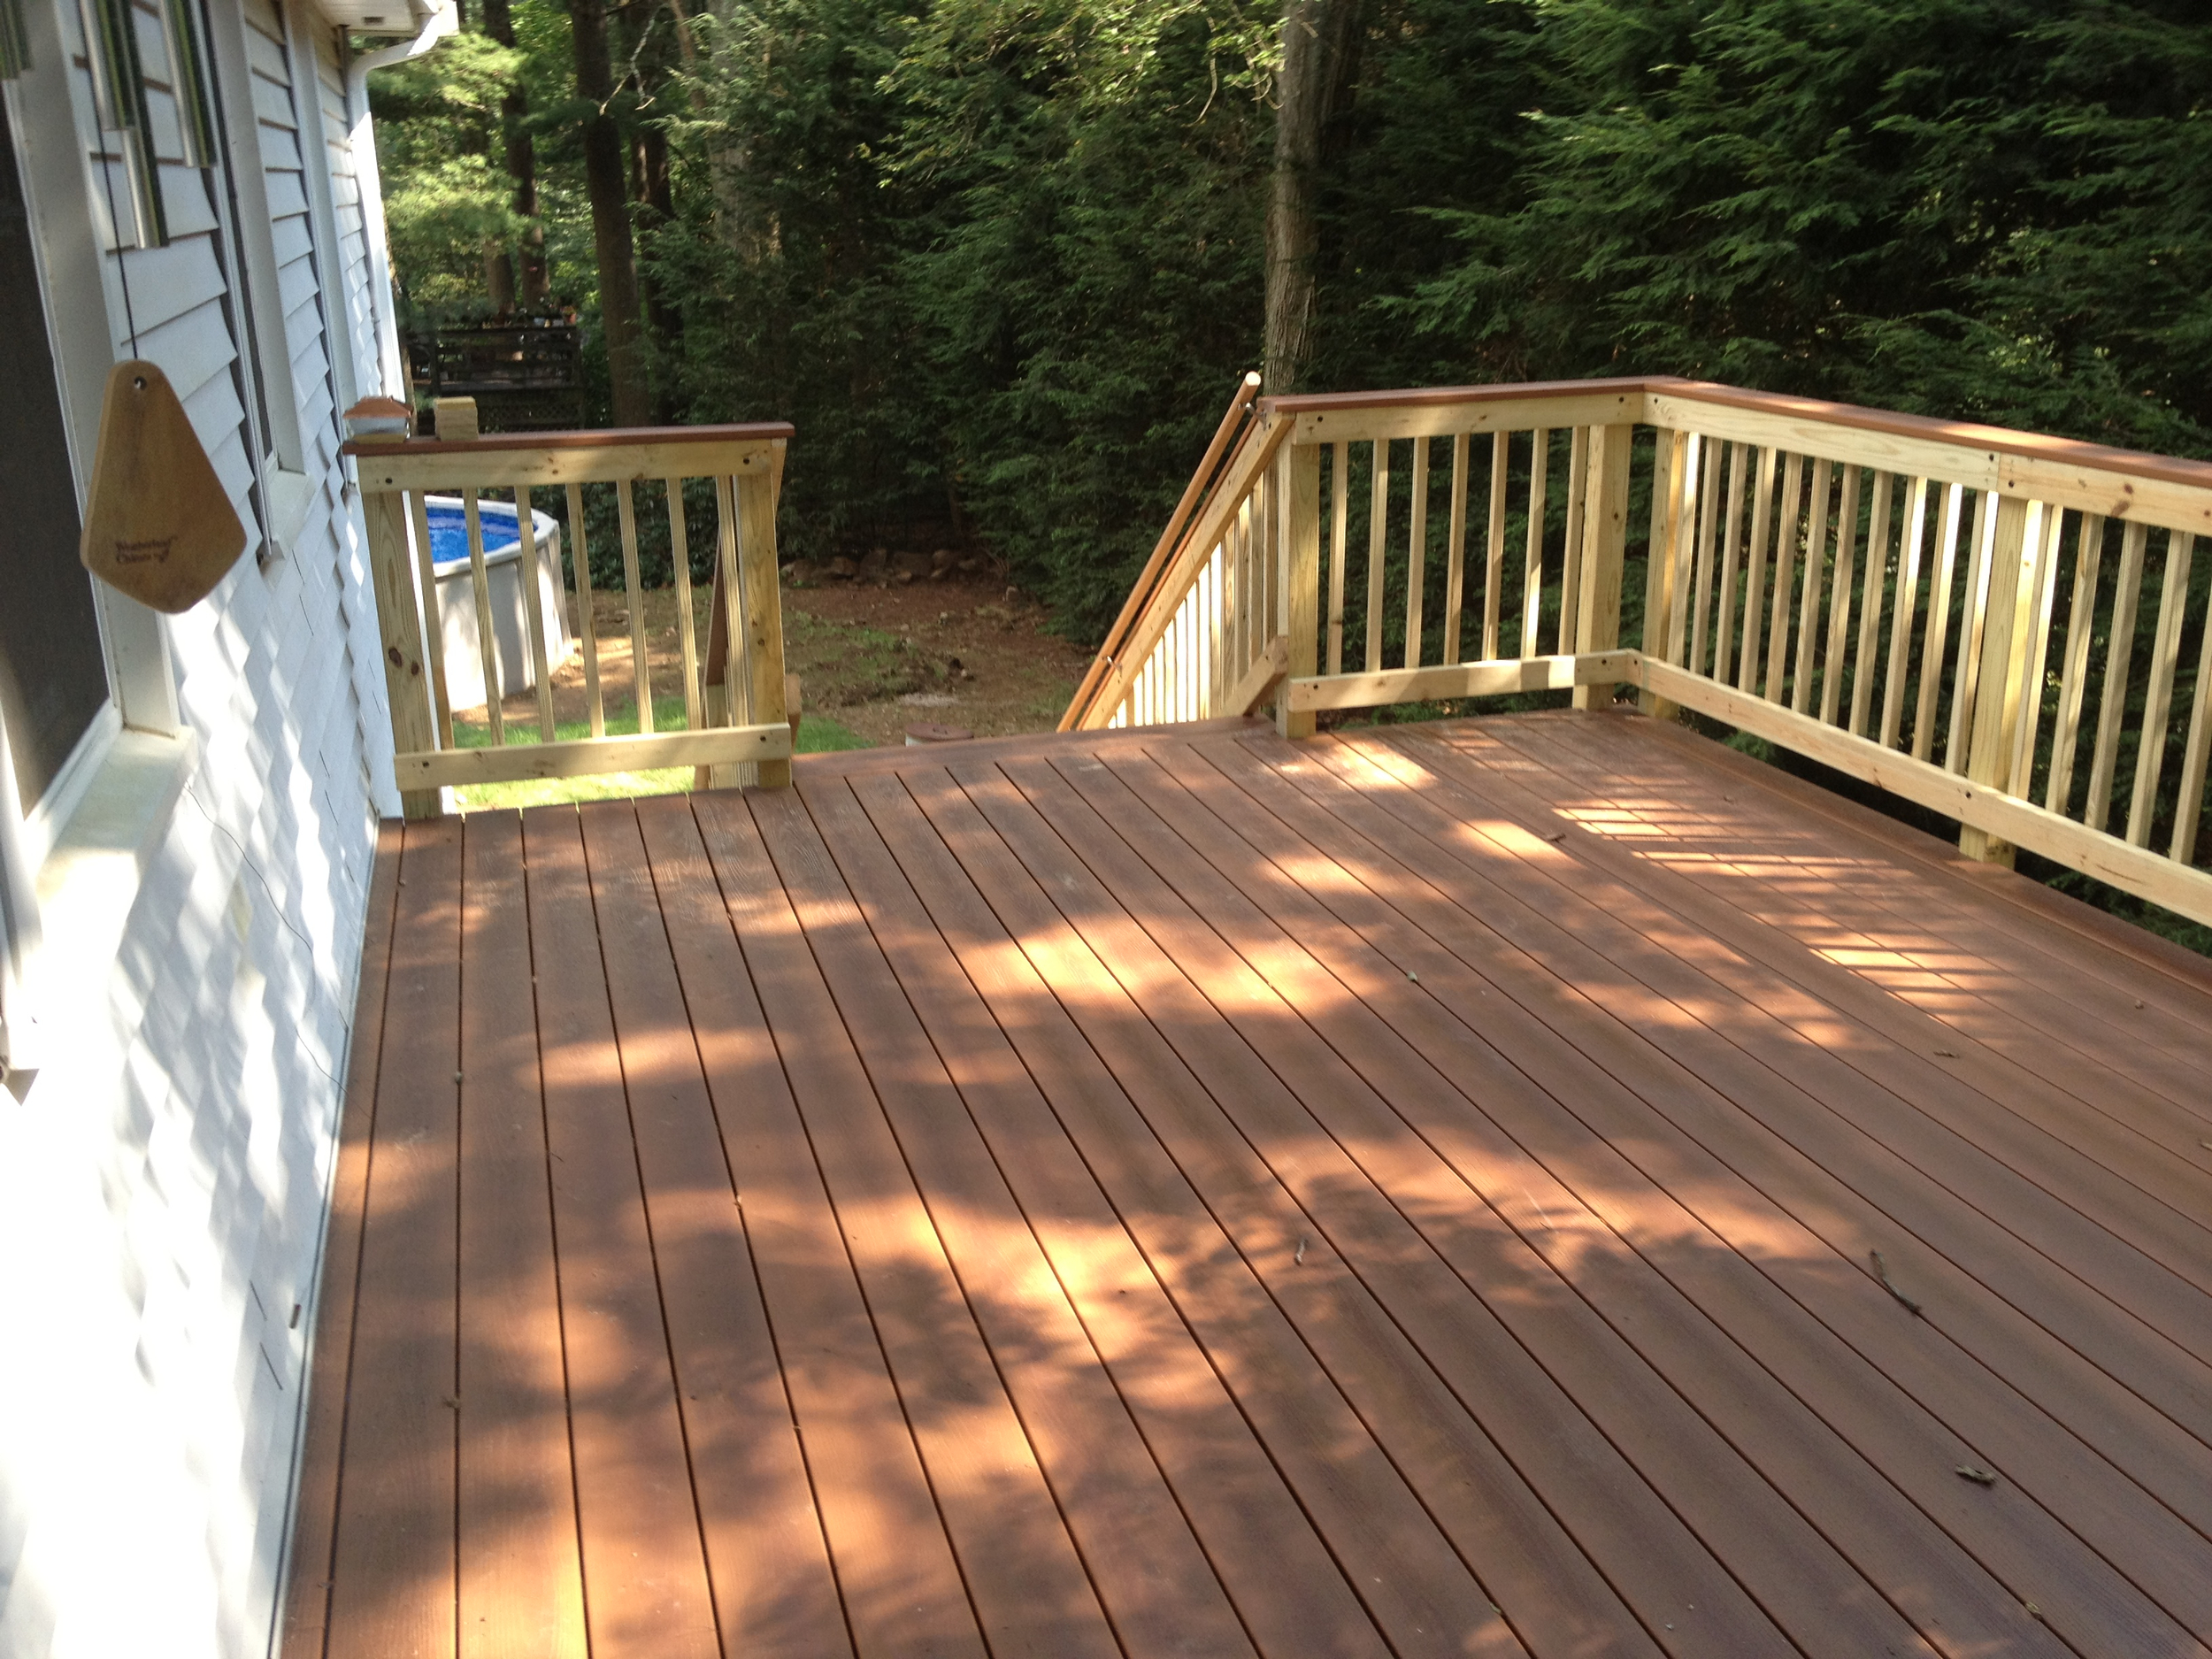 New Composite Decking Project, Medway 2011